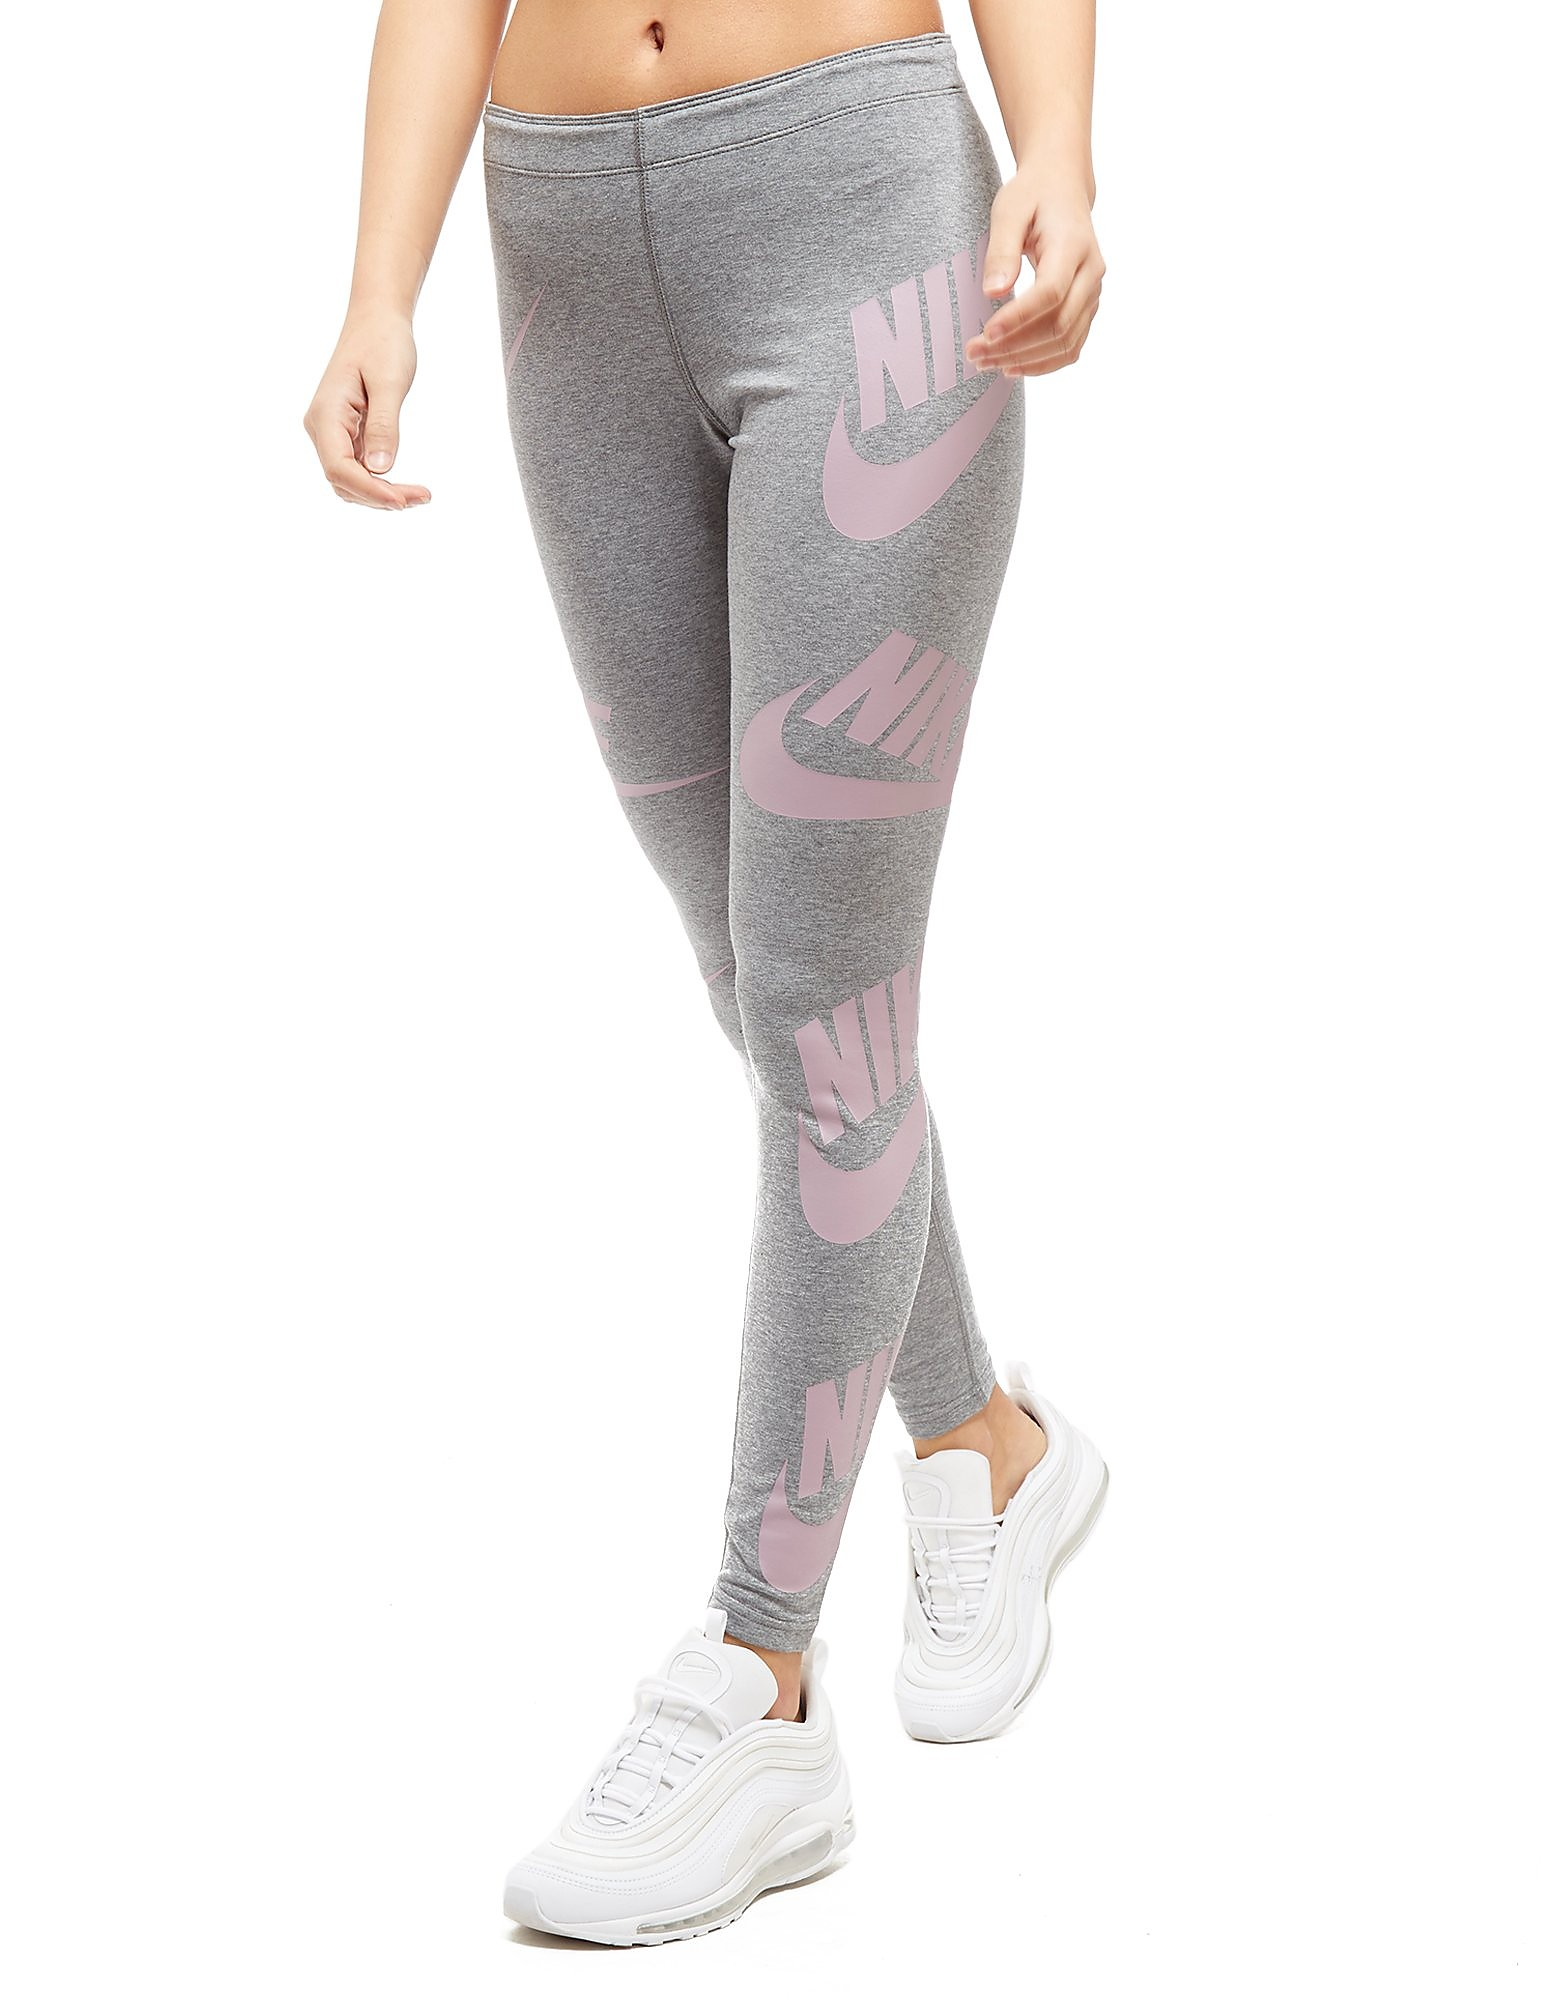 Nike Futura All Over Print Leggings